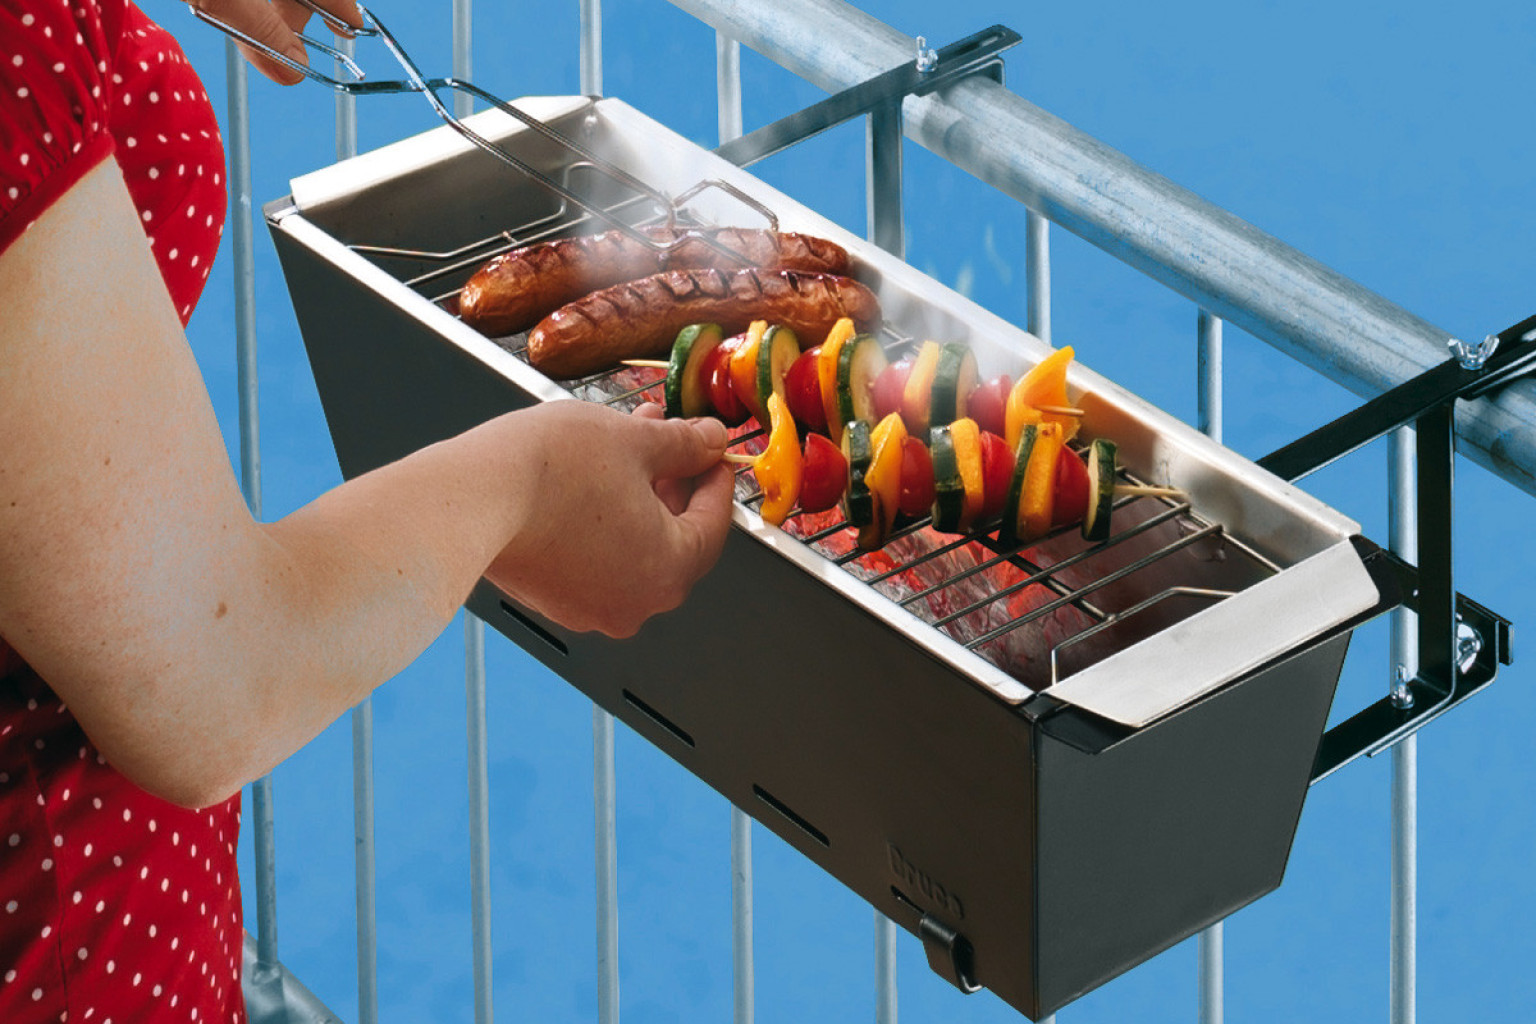 balcony grill barbecue has never seemed so incredibly dangerous photo huffpost. Black Bedroom Furniture Sets. Home Design Ideas